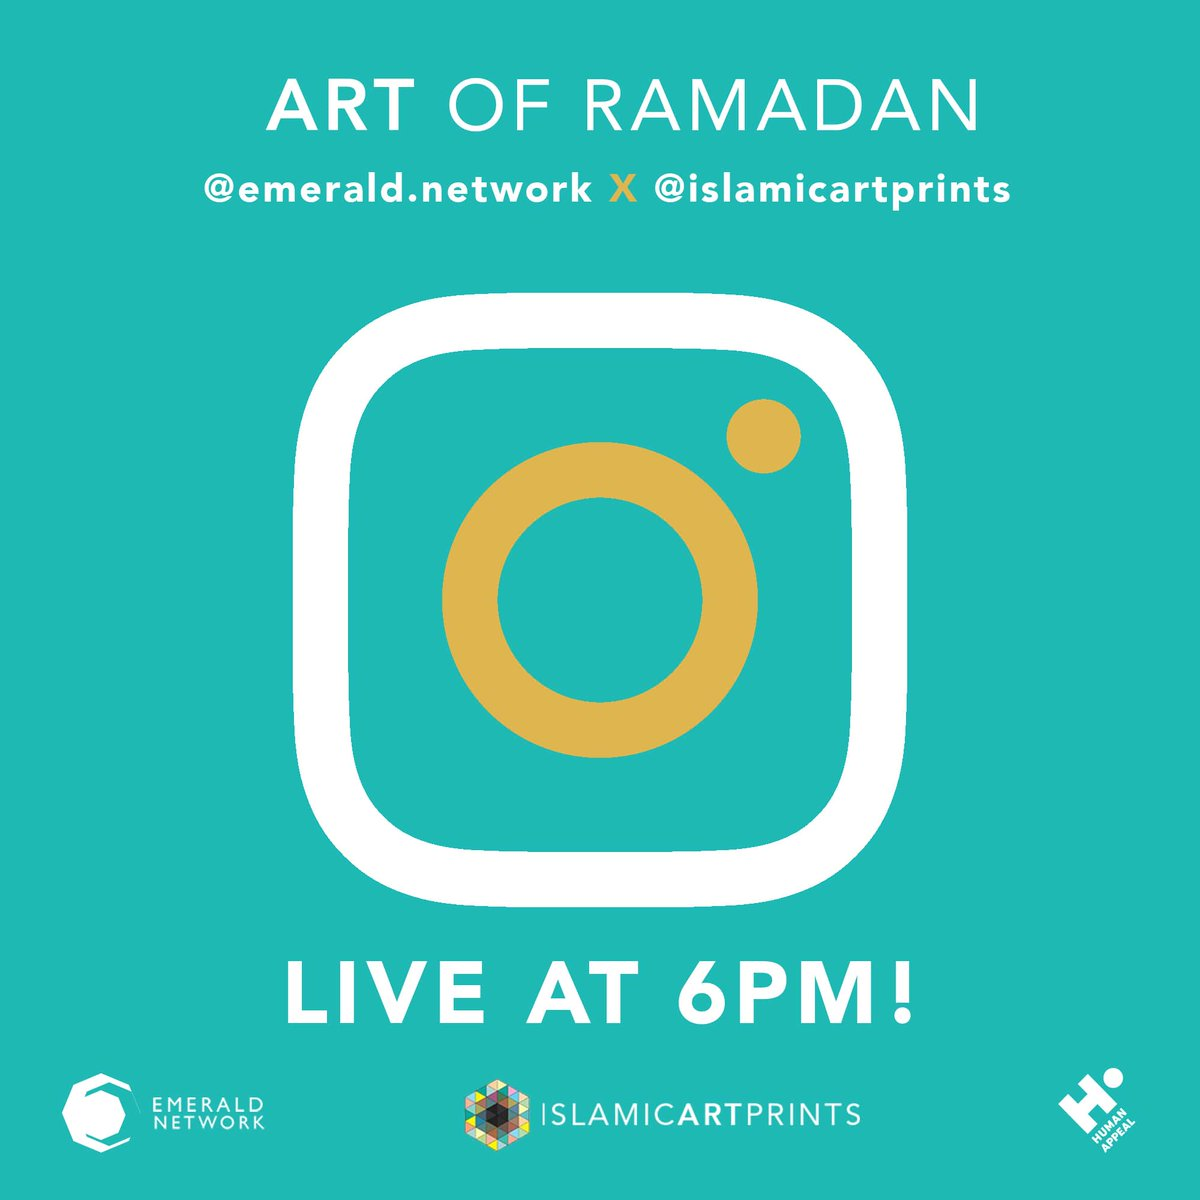 Calling all of our wonderful twitter followers who are on #instagram to head over at 6pm (BST) tonight for an exclusive chat with https://t.co/m6TXZg4YOn - talking about our #ArtofRamadan campaign connecting creator + creations in support of @HumanAppeal https://t.co/CIuBniG0OA